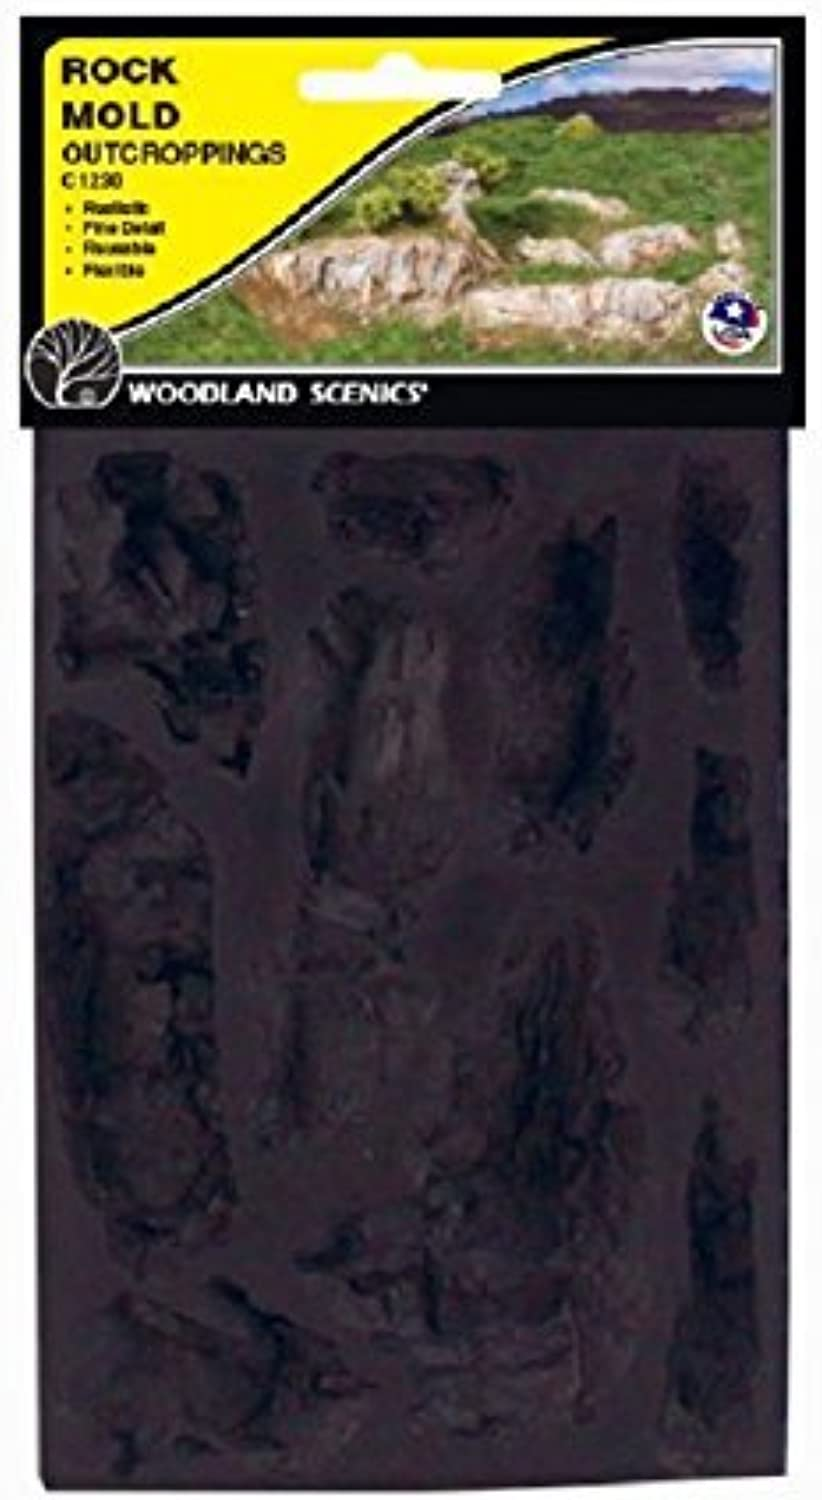 liquidación hasta el 70% Woodland Paysages Paysages Paysages WS 1230 Rocher Mold-Outcroppings - 5 x 7 by Woodland Scenics  Envío 100% gratuito